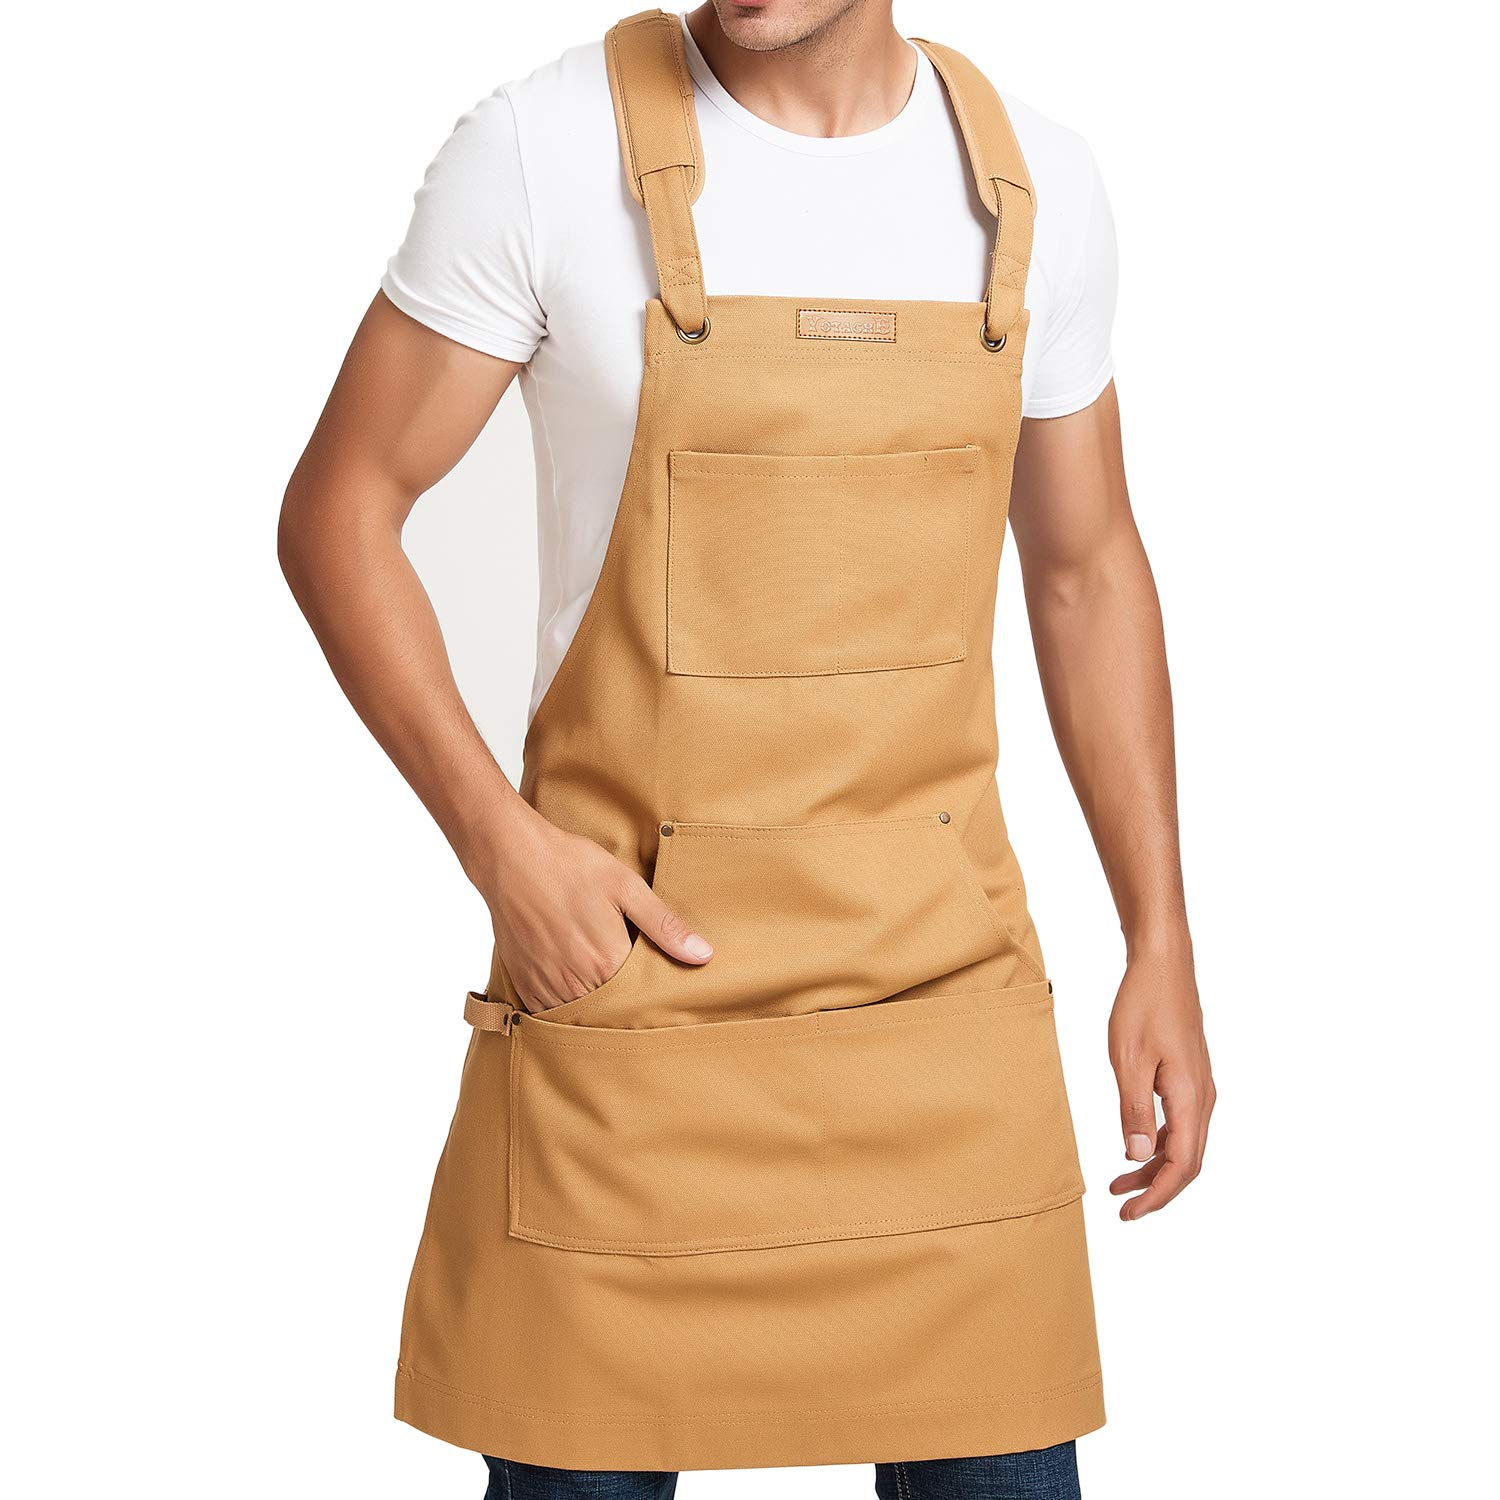 Mens Utility Apron Heavy Duty Tool Apron Durable Water Resistant Waxed Apron with Multifunctional Pockets and Adjustable Cross-Back Straps, Ideal for Carpenters, Woodworkers, Barbecue, Woodshop